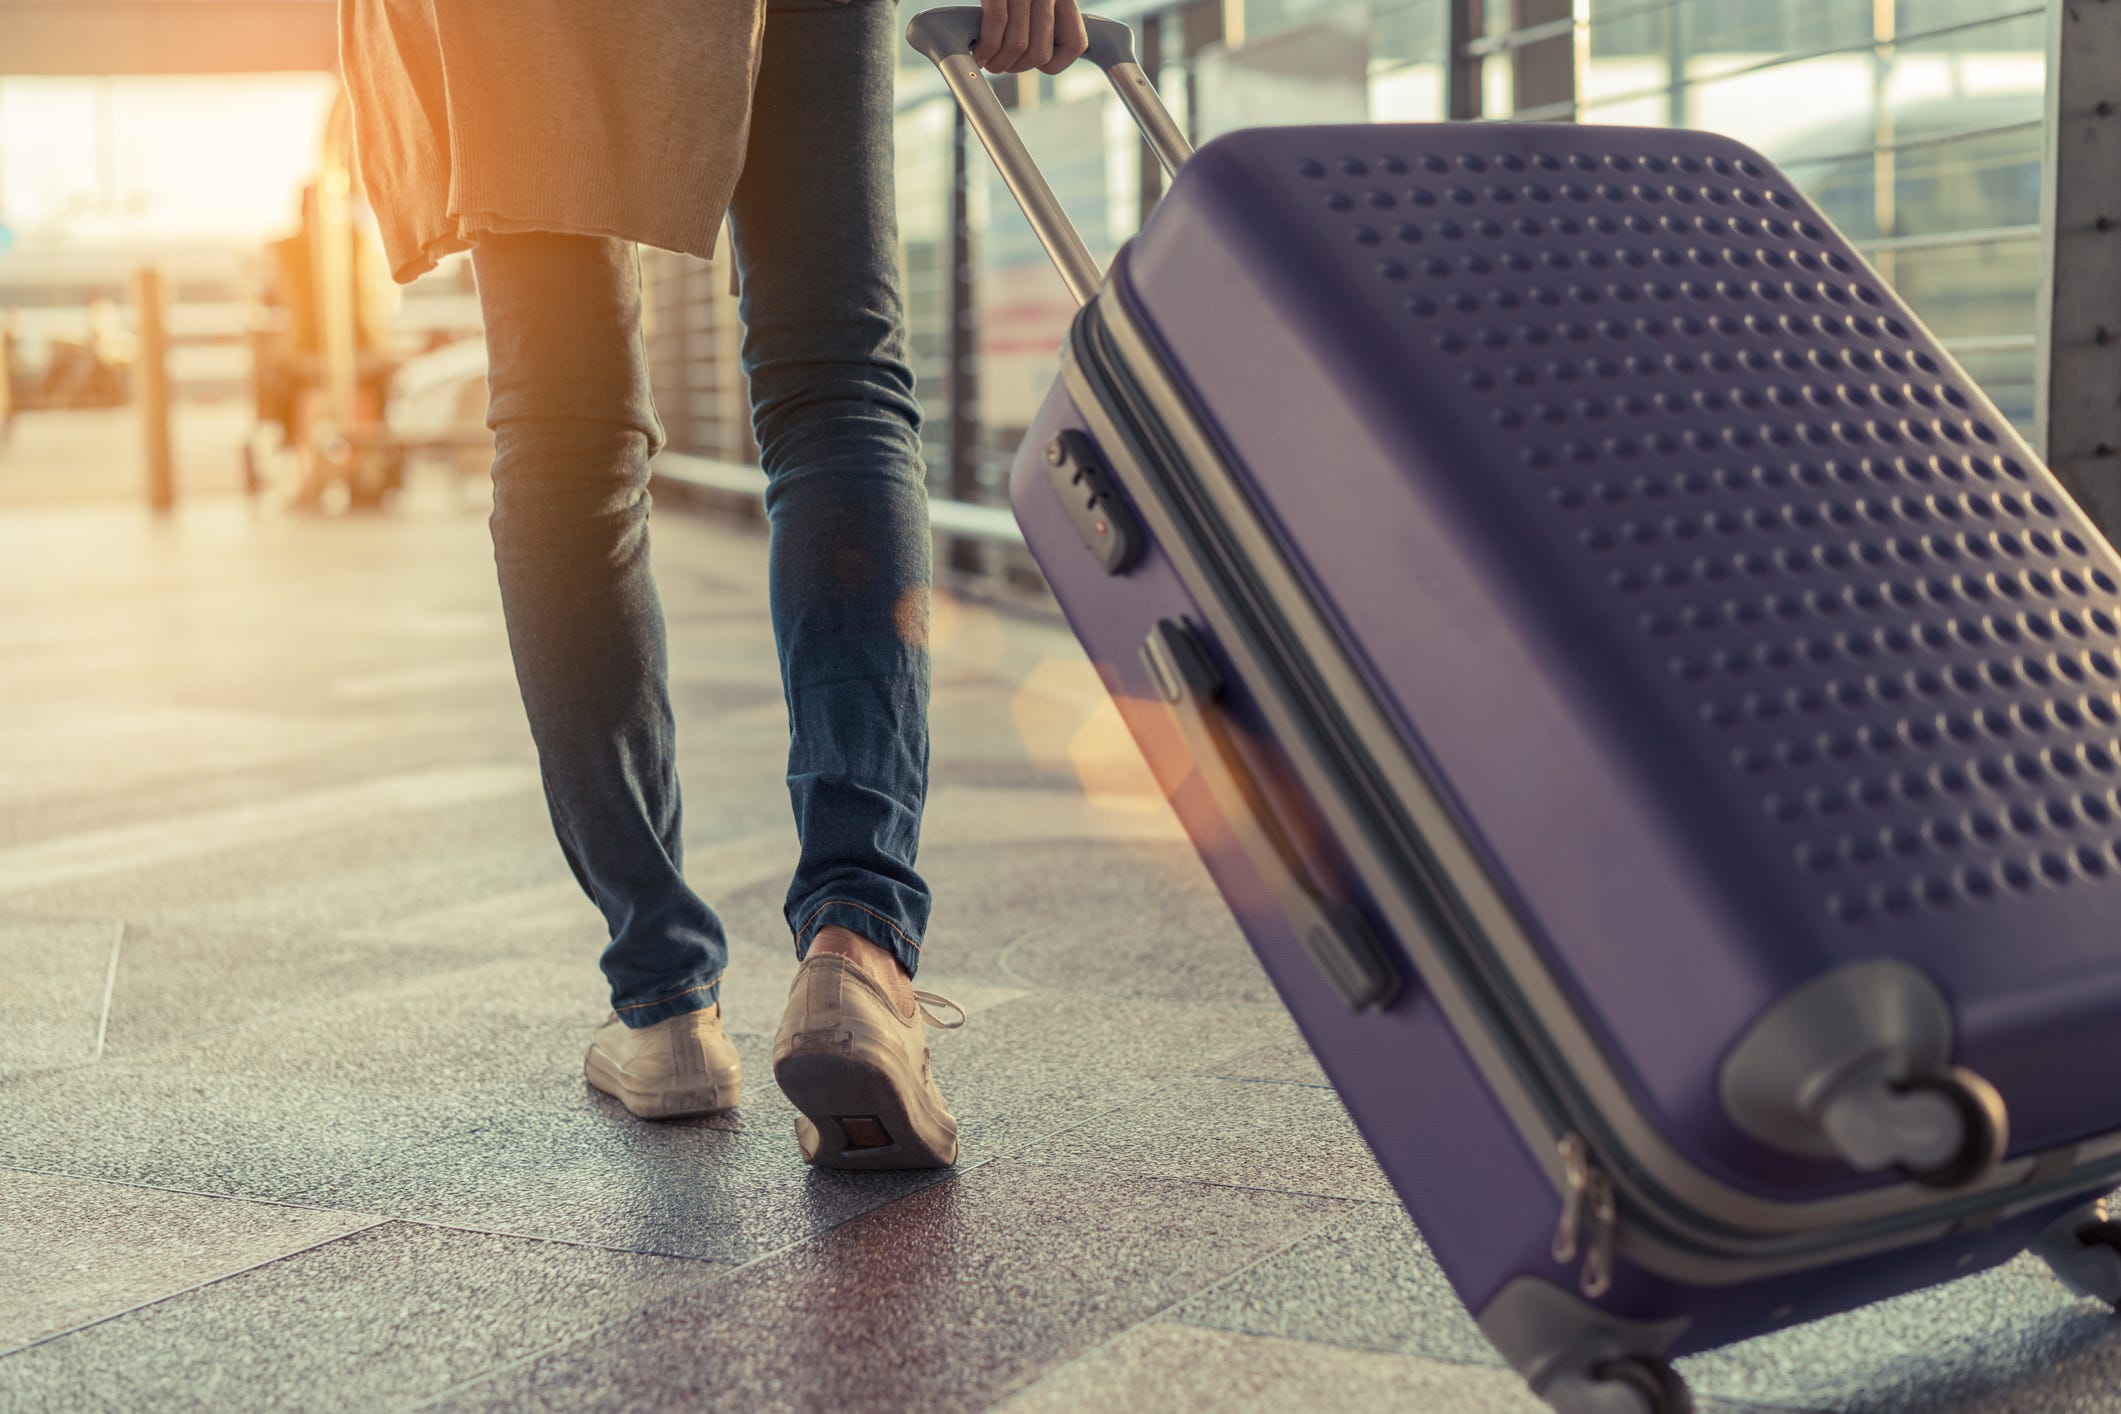 Amazing airfares: December is the year's final deal zone | USA Today